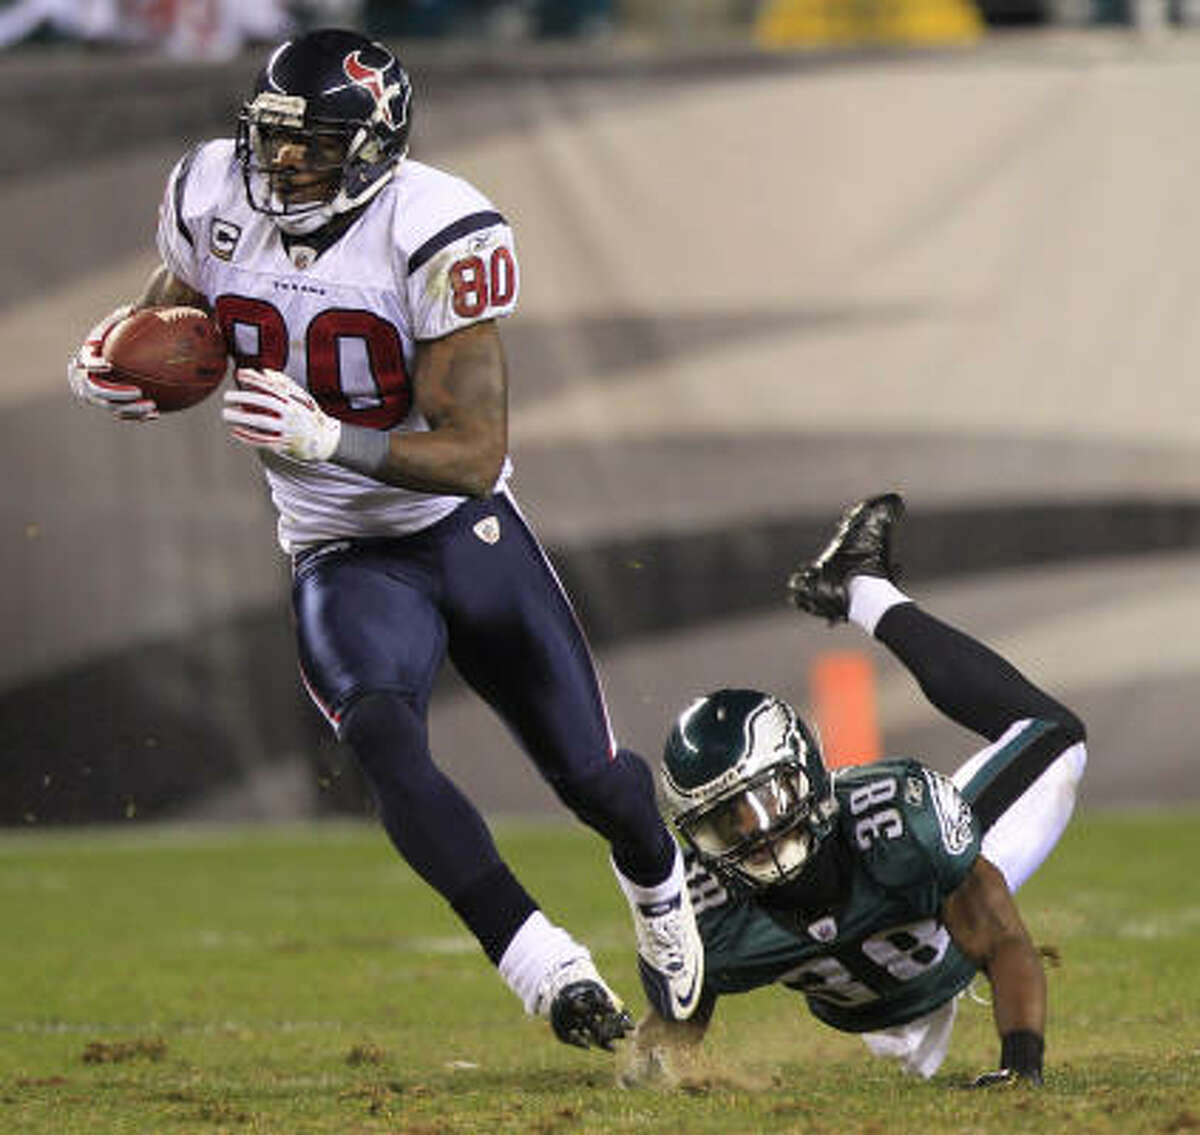 Andre Johnson Position: Wide receiver Receiving yards: 1,216